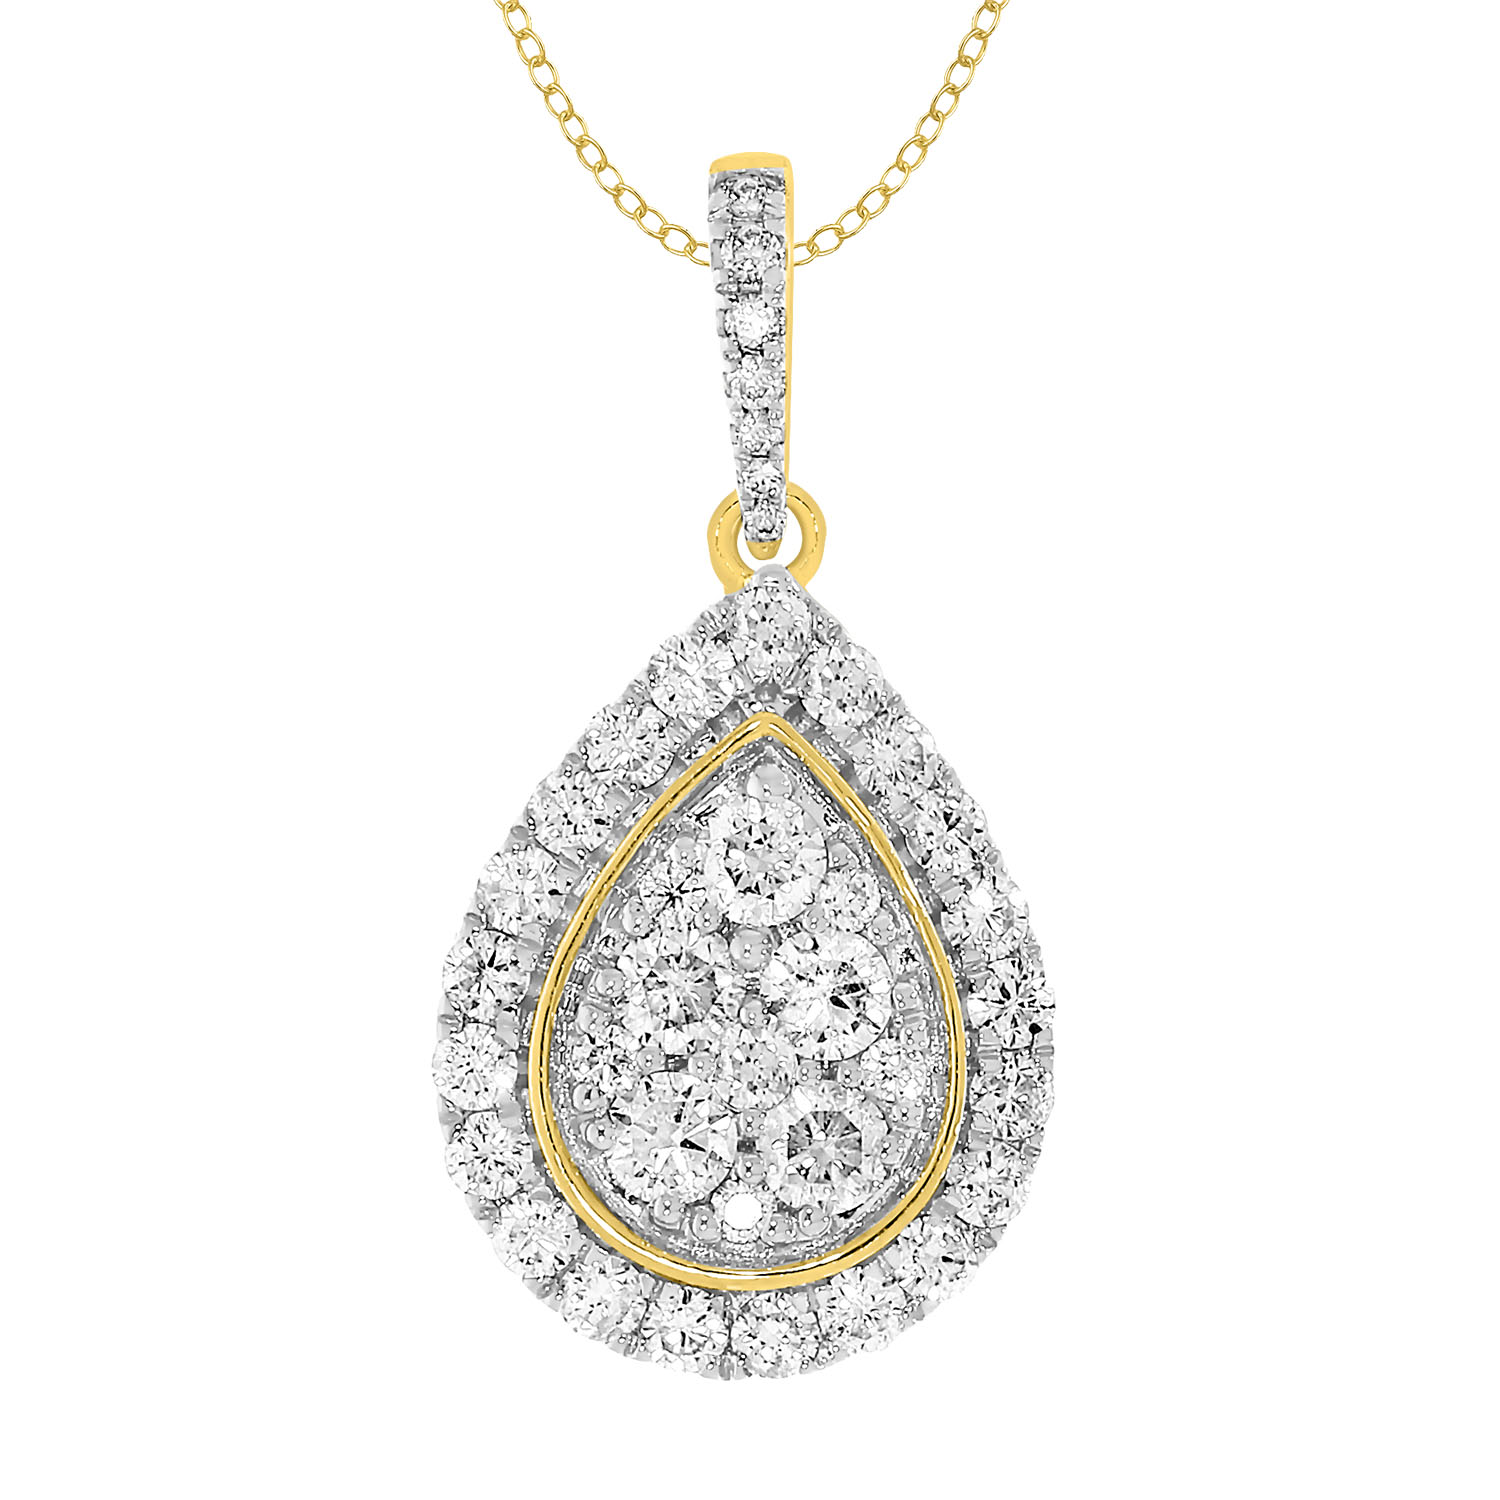 9ct Yellow Gold 1 Carat Diamond Pear Shape Pendant on 45cm Chain